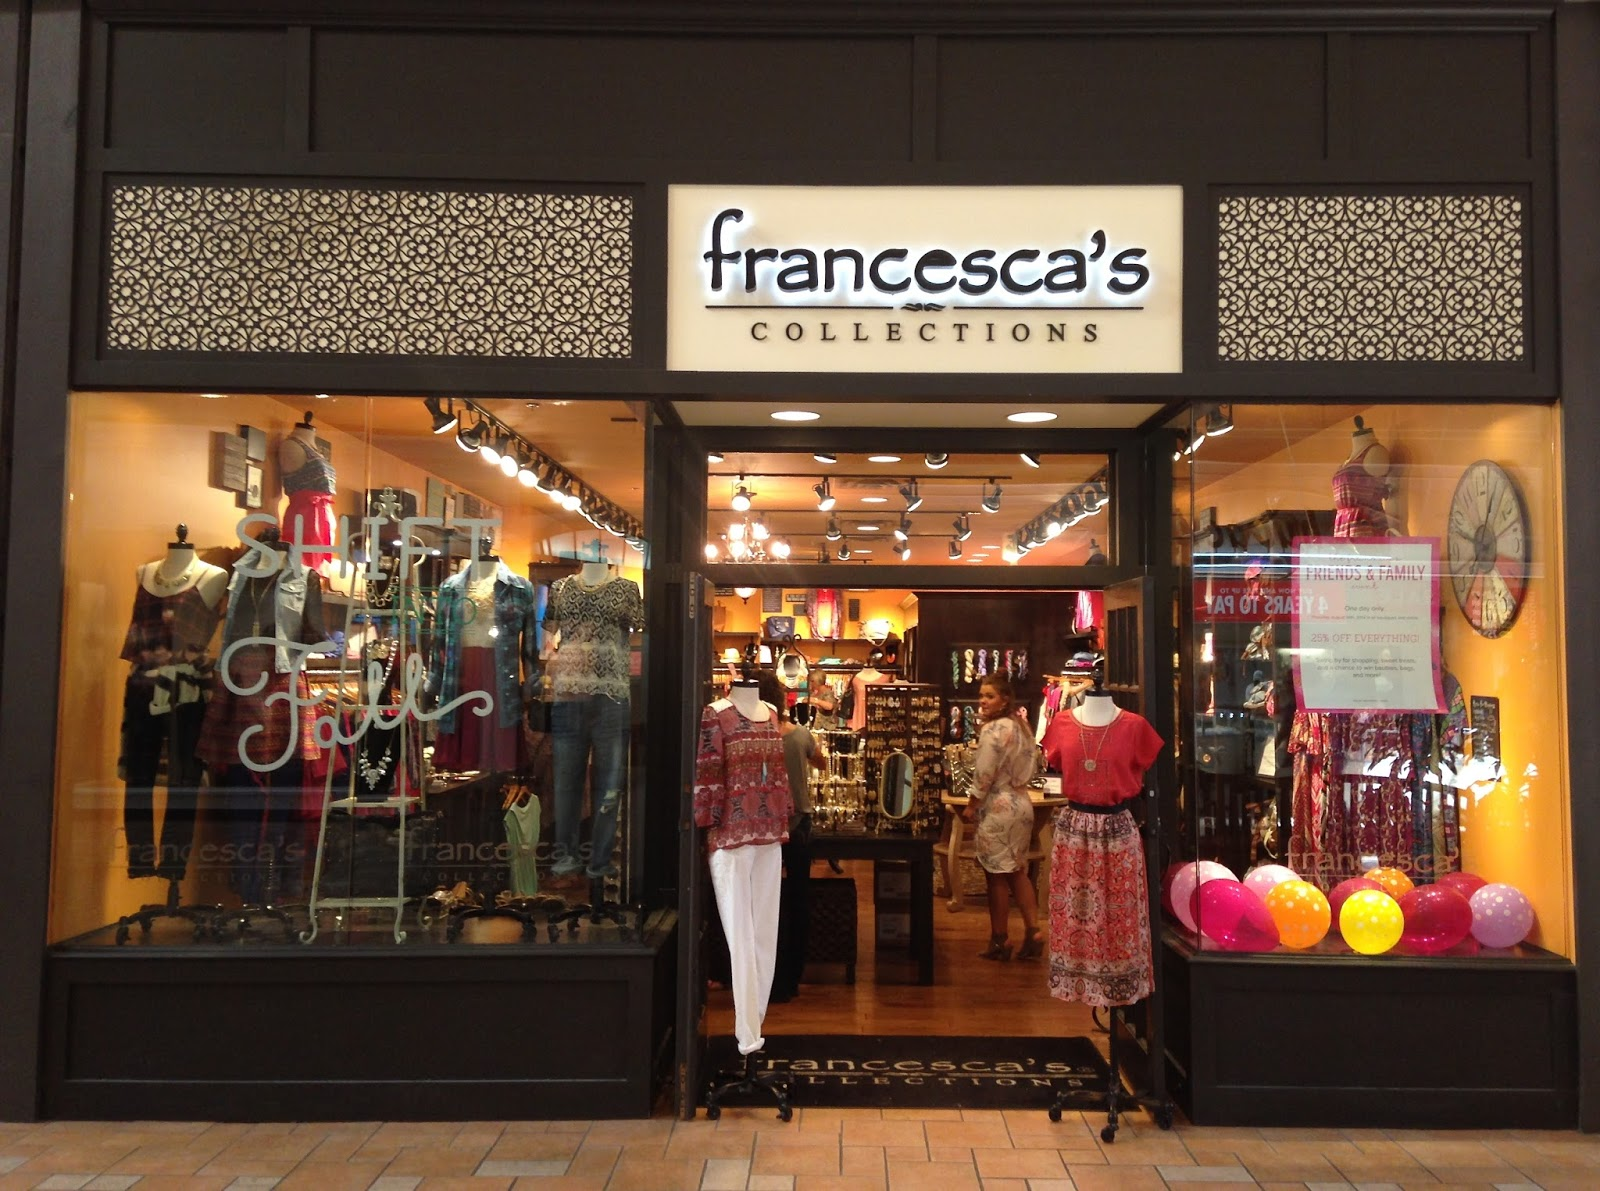 Collections Store | breezy days francesca s collections friends family sale